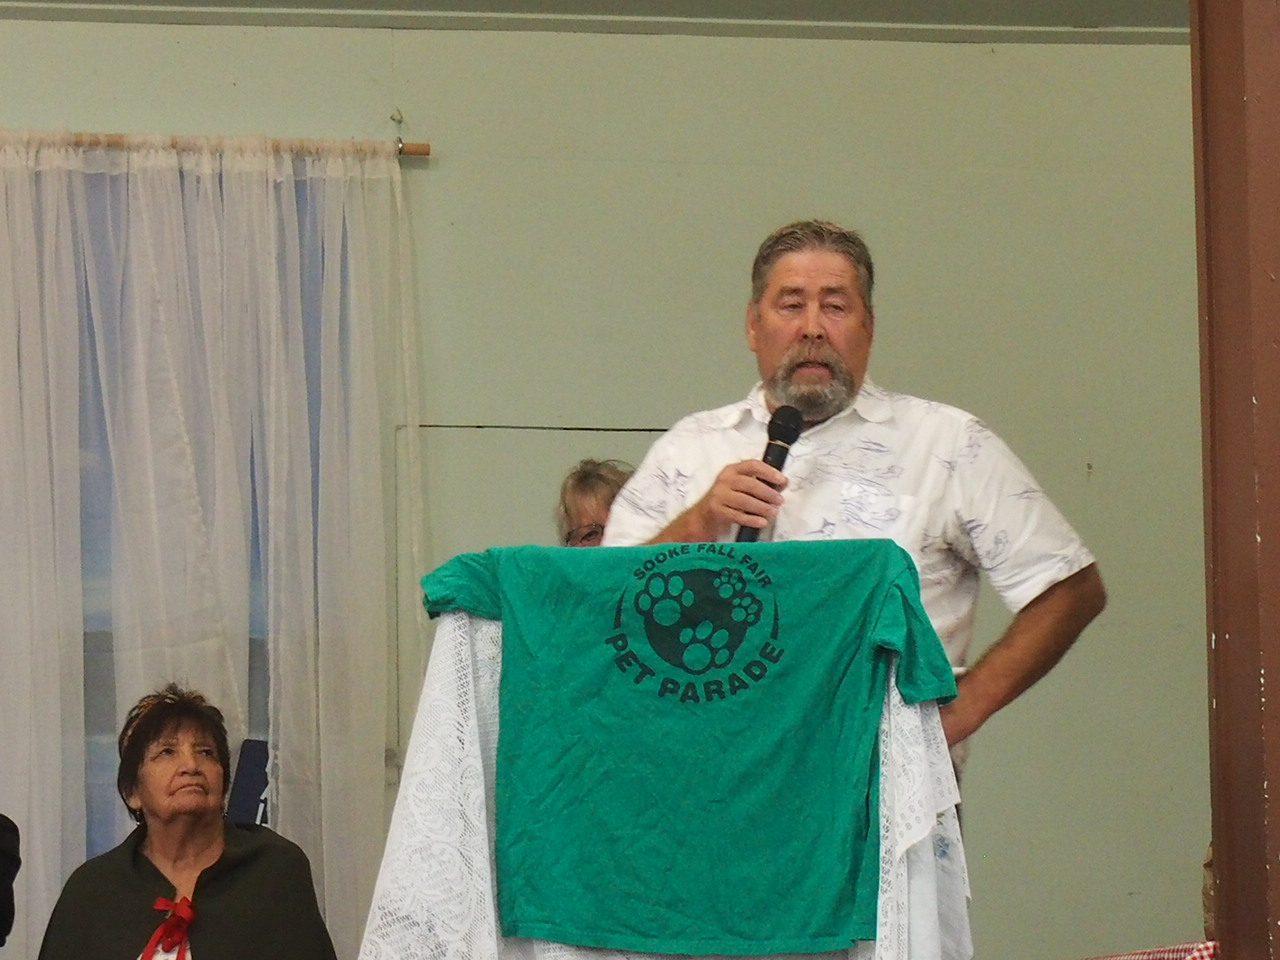 Director Mike Hicks at the opening of the Sooke Fall Fair. SPN photo.